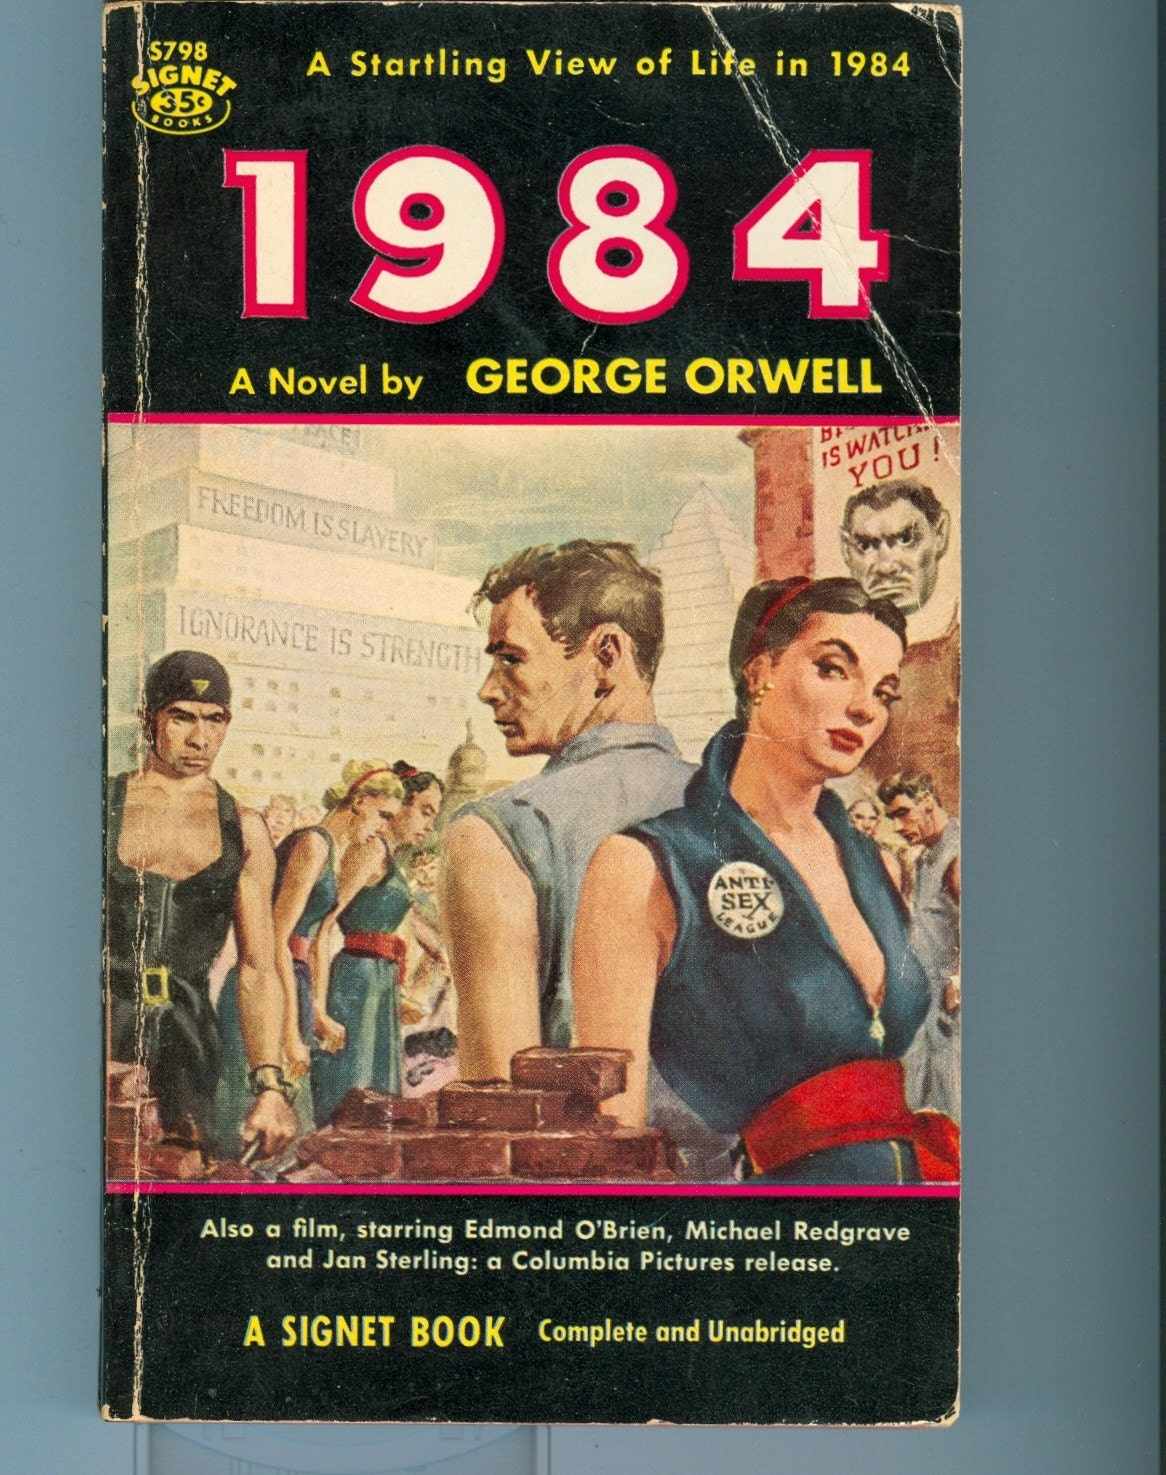 sociology within 1984 by orwell Catch-22 by joseph heller catcher in the rye by j d salinger 1984 by george orwell a clockwork orange by anthony burgess death of a salesman by arthur miller a confederacy of dunces by john kennedy toole slaughterhouse-five by kurt vonnegut life of pi by yann martel we knew any one of the republican.